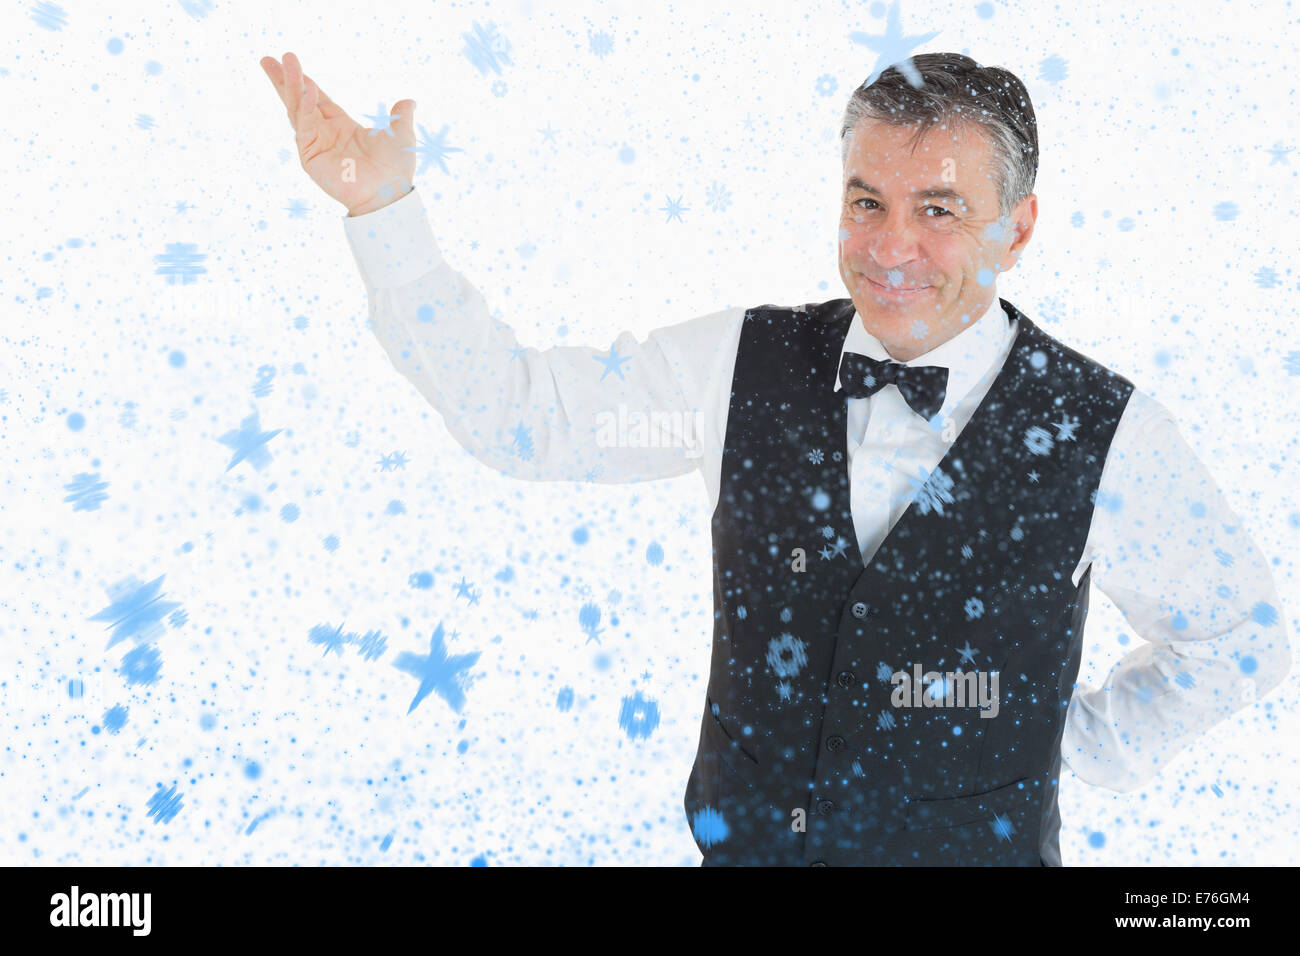 Composite image of smiling man pointing to something - Stock Image